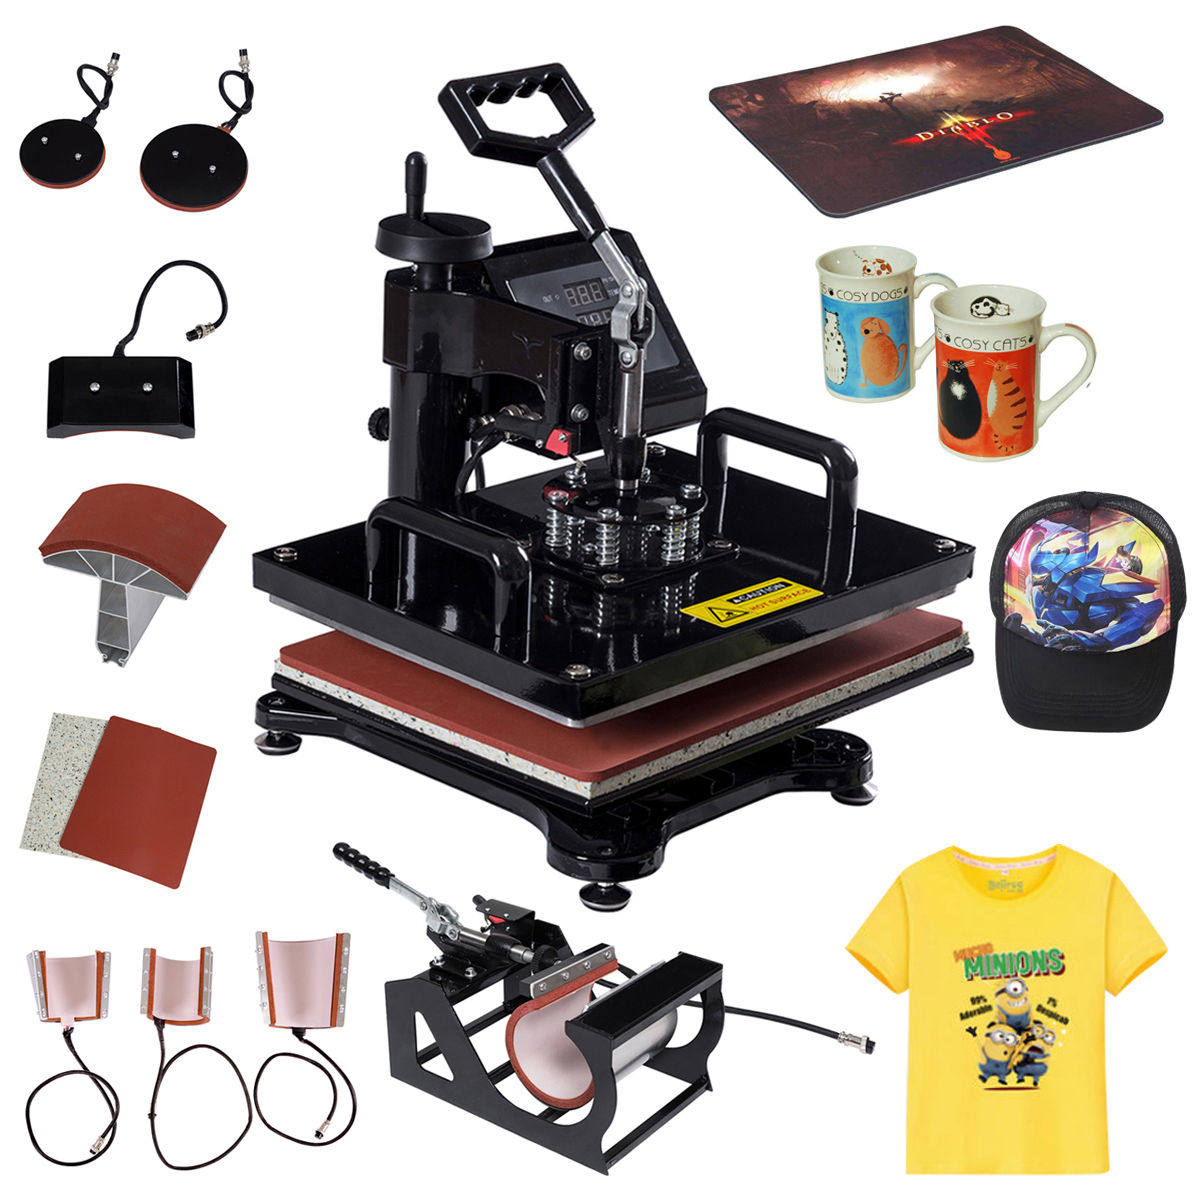 Sublimation Press 8 In 1 Heat Press Machine Digital Transfer Sublimation T Shirt Mug Hat Plate Cap